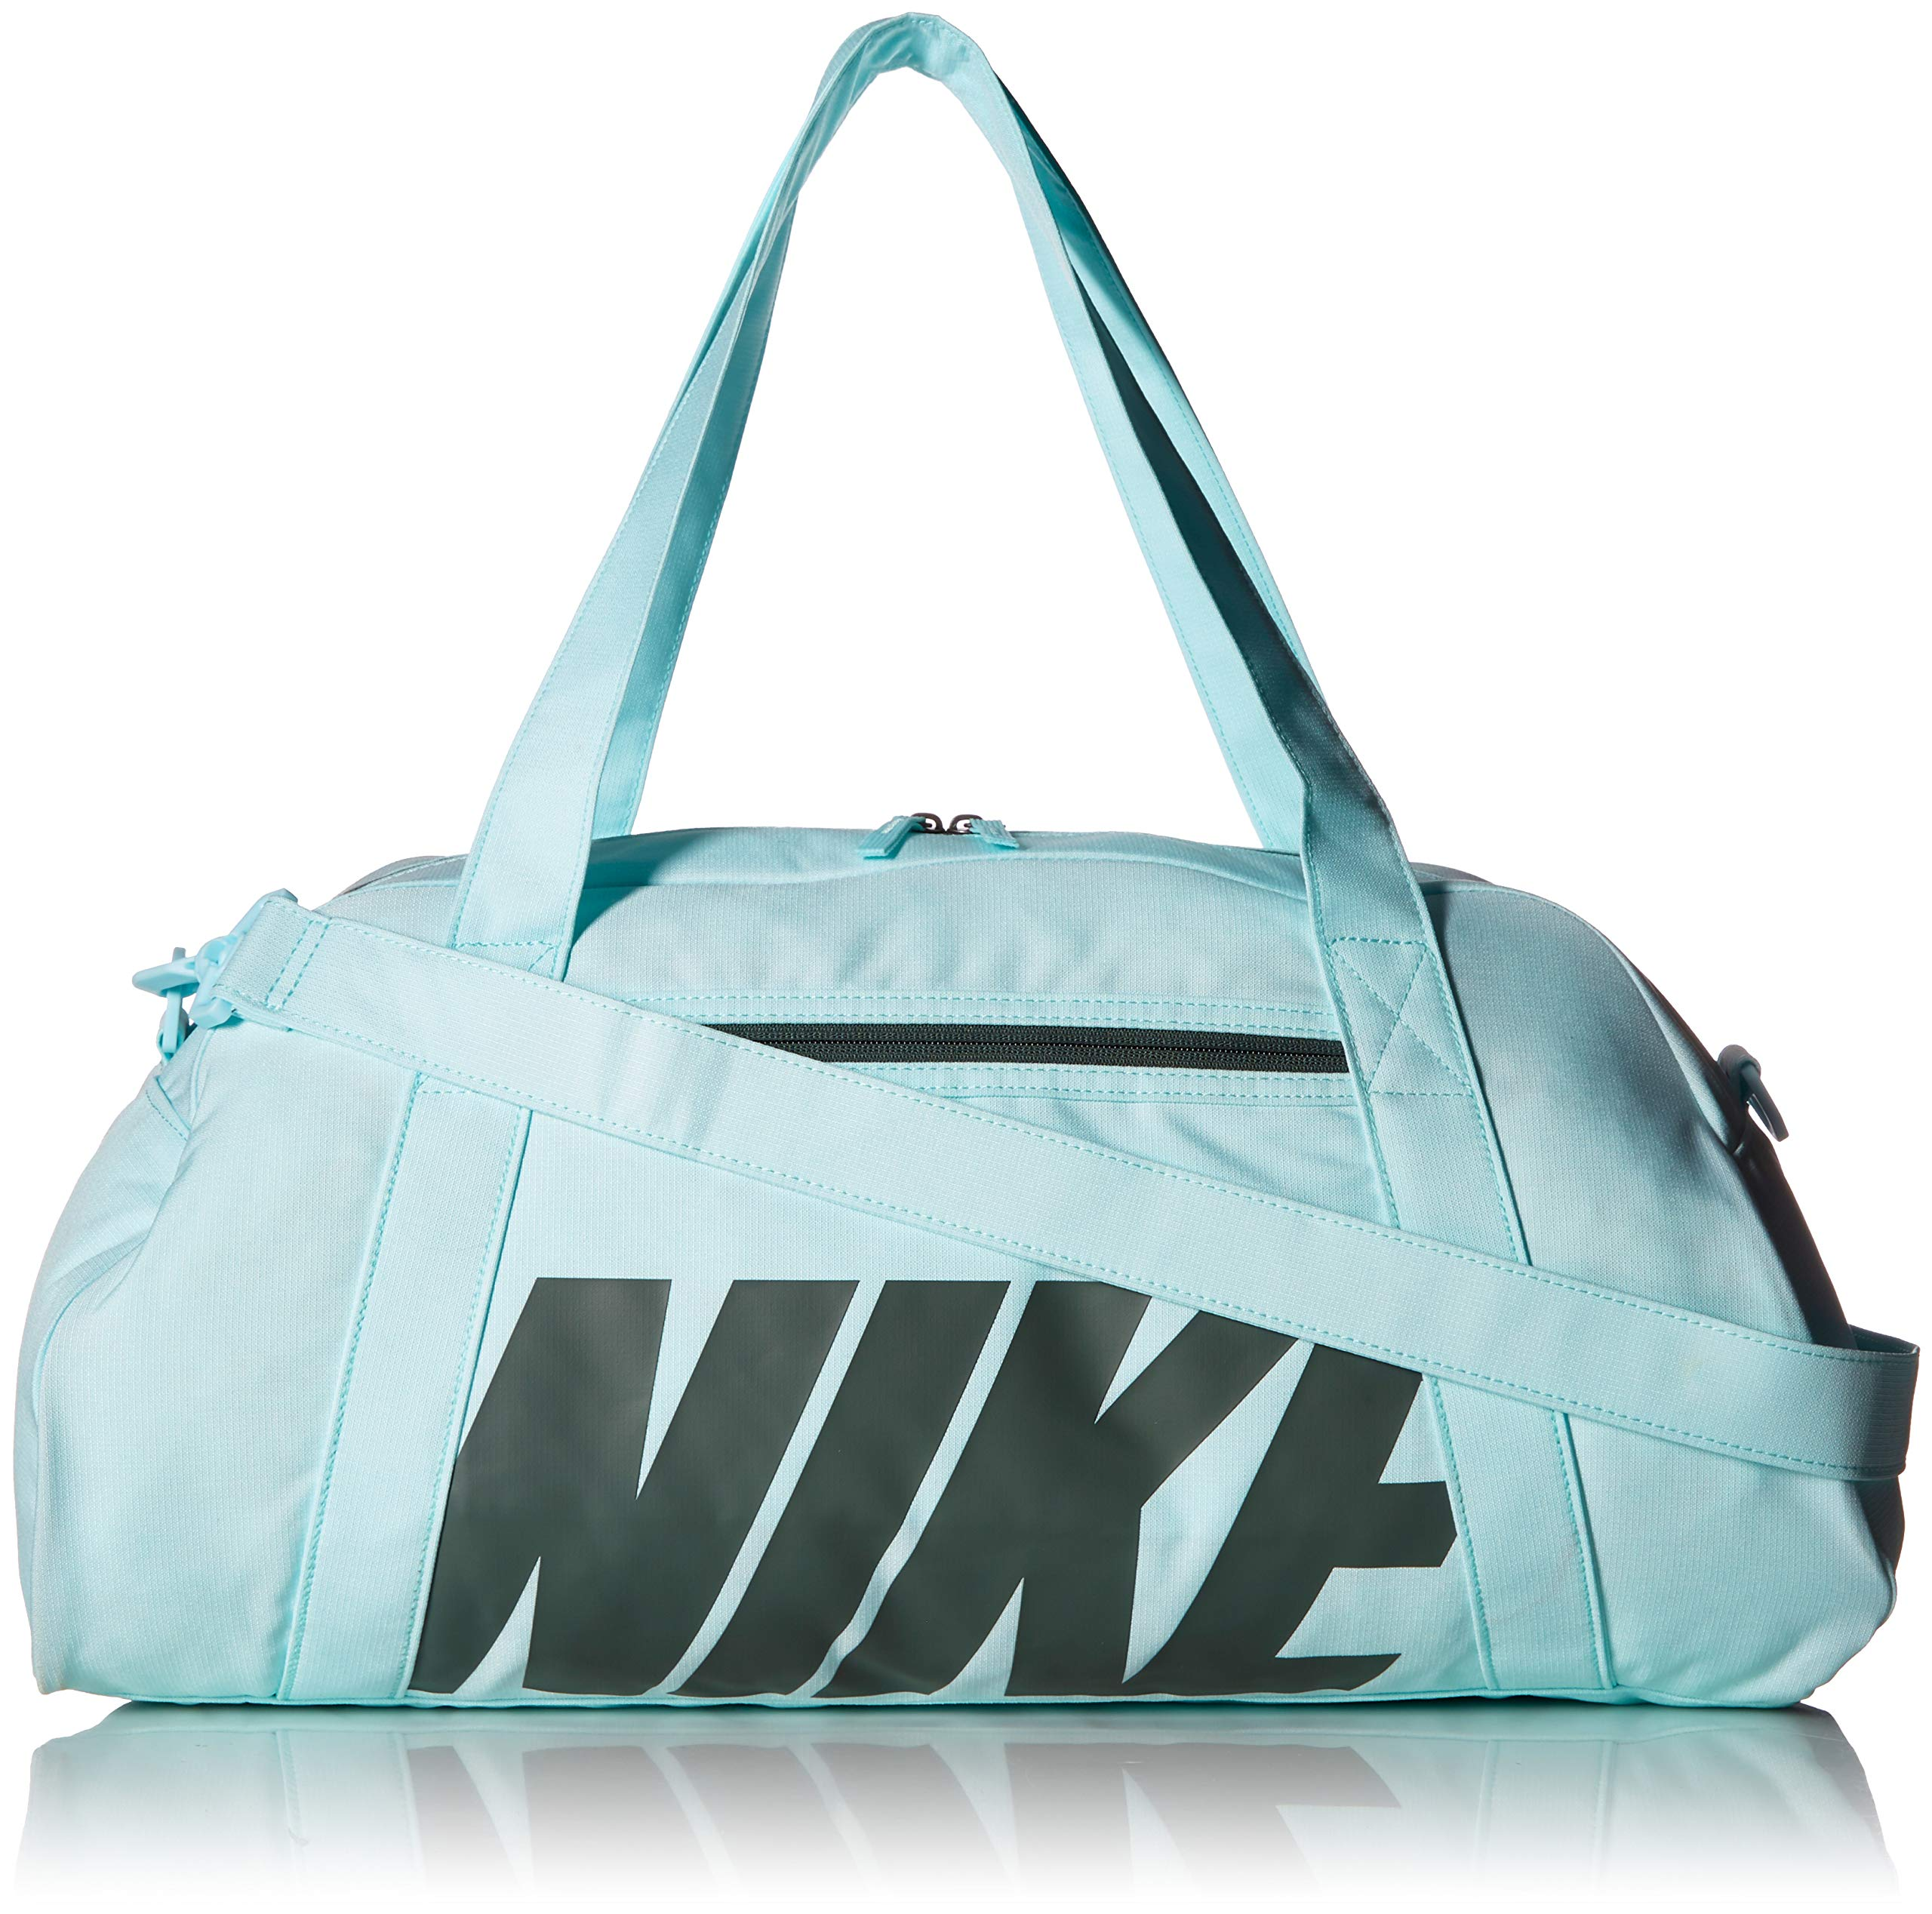 Nike Women's Gym Club Bag, Teal Tint/Mineral, One Size by Nike